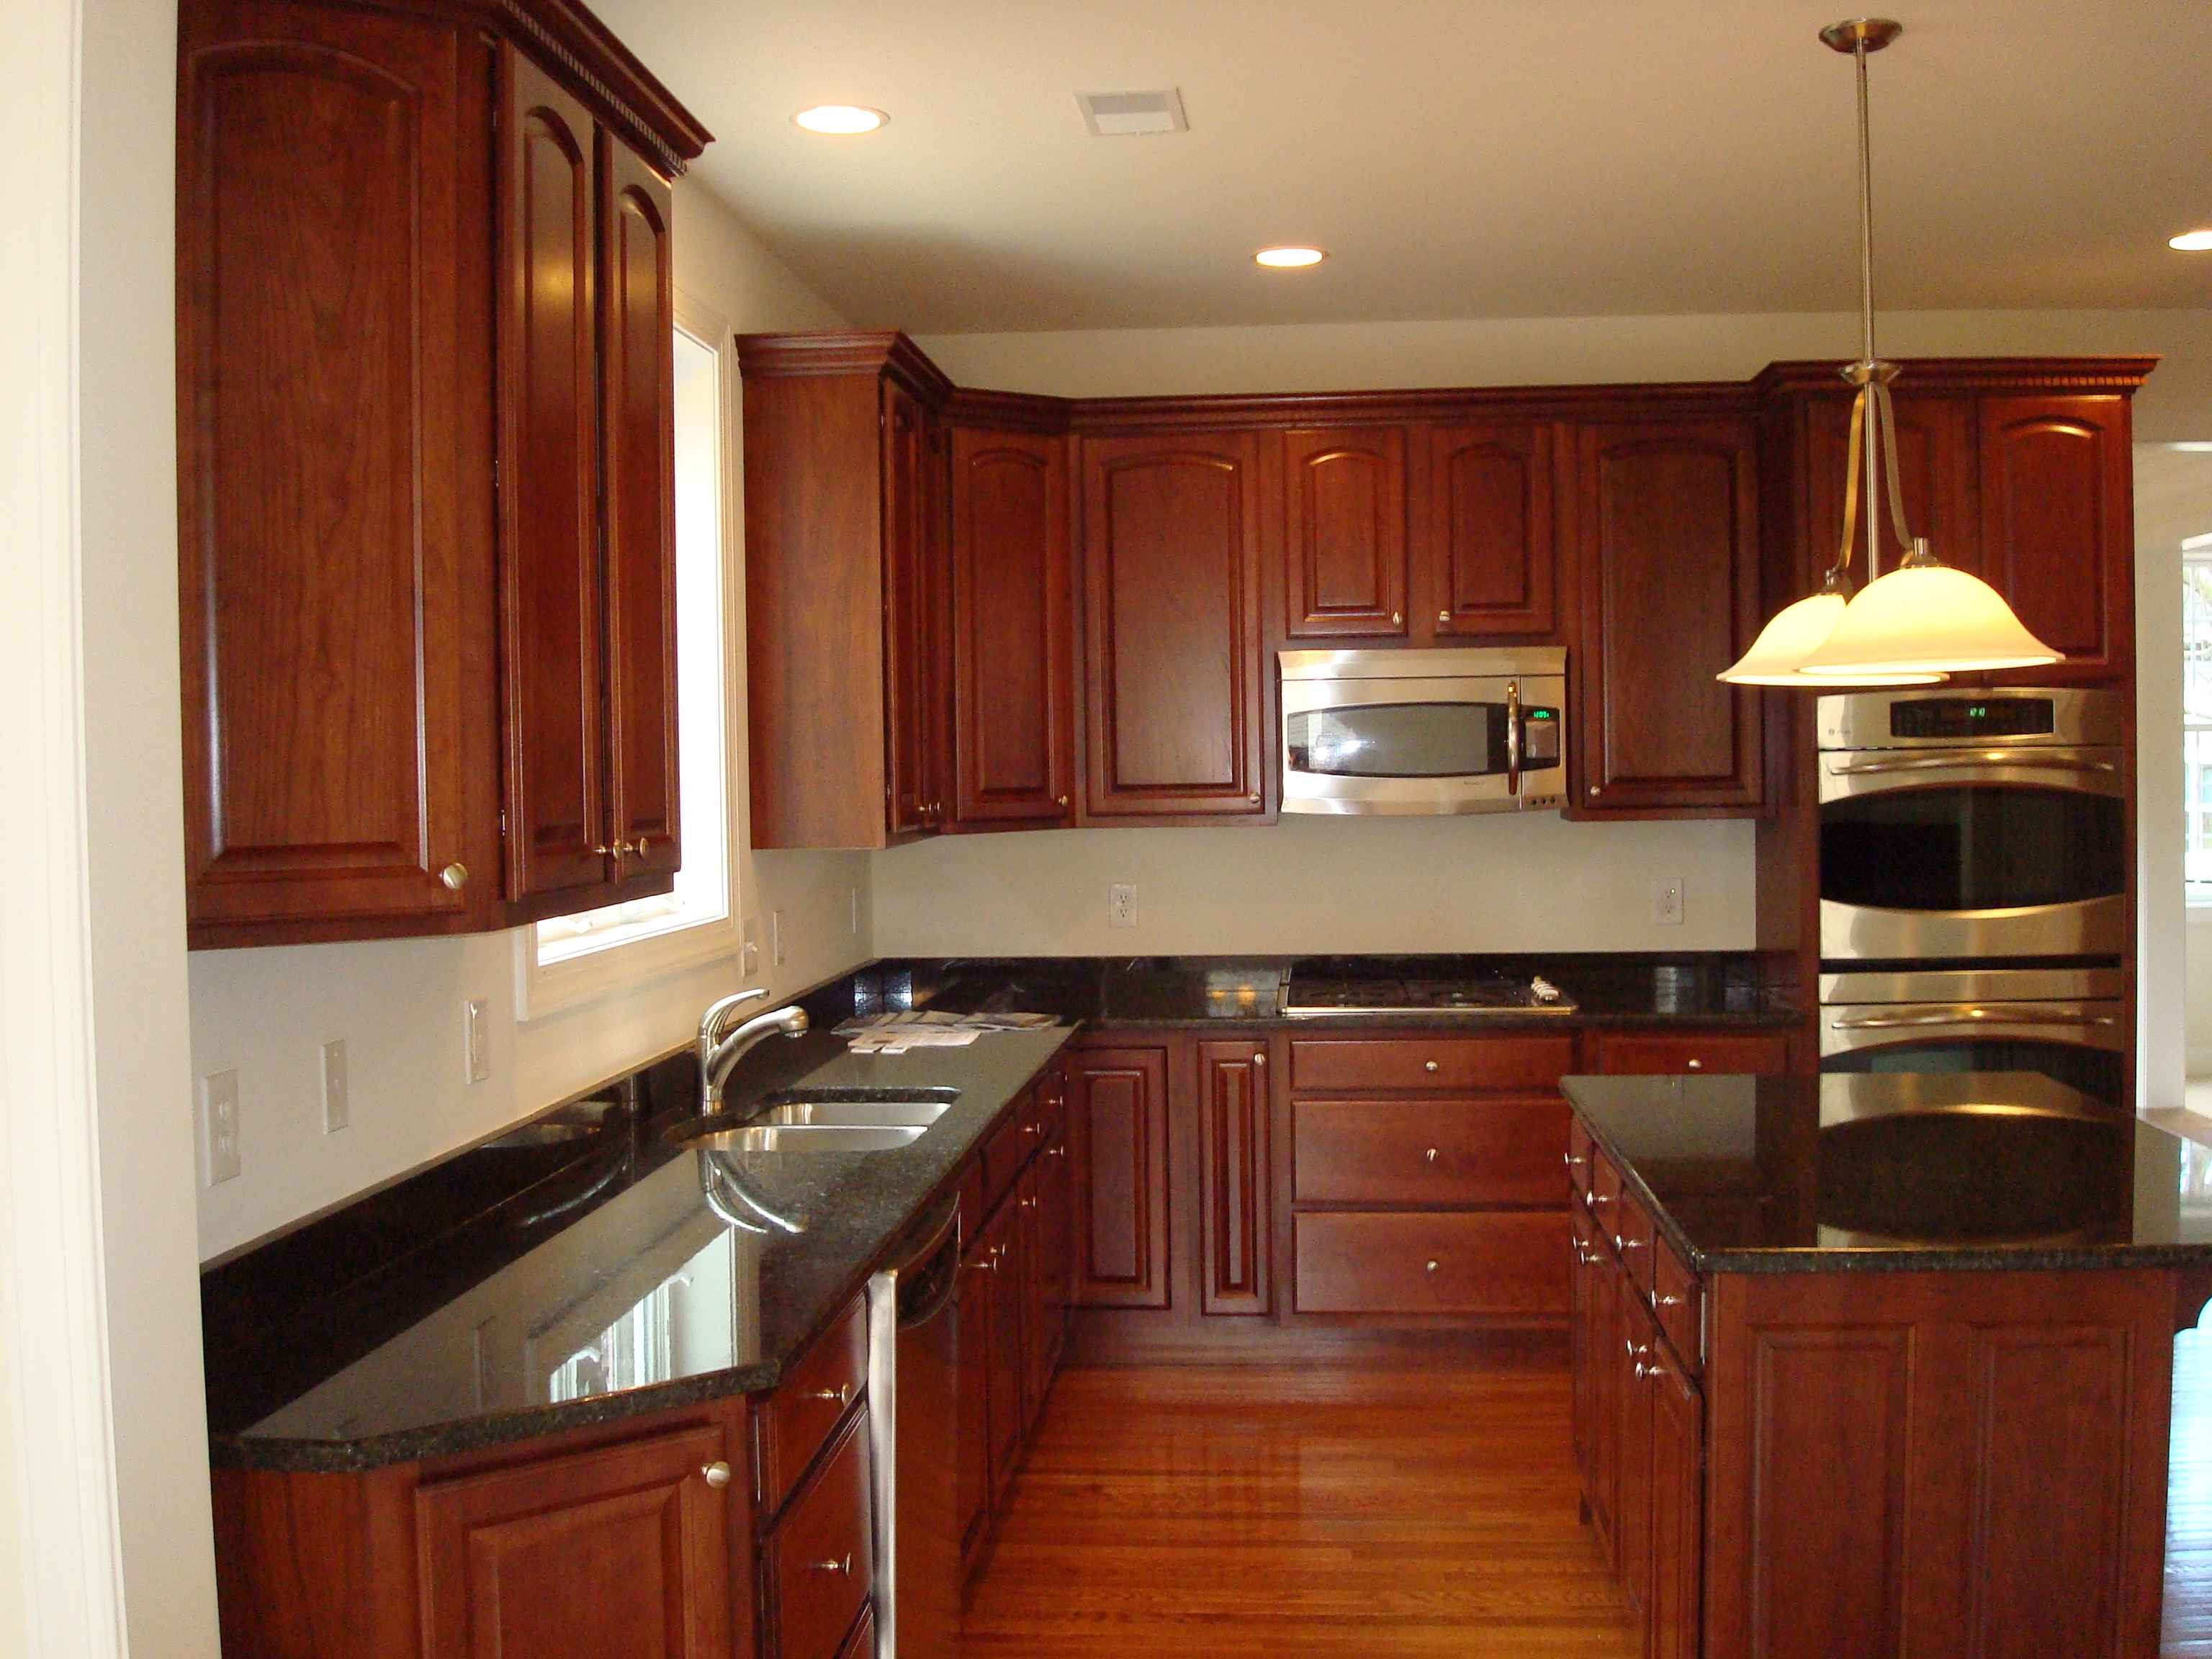 Kitchens and bathrooms renovation kitchen remodeling for Kitchen cabinets and countertops ideas